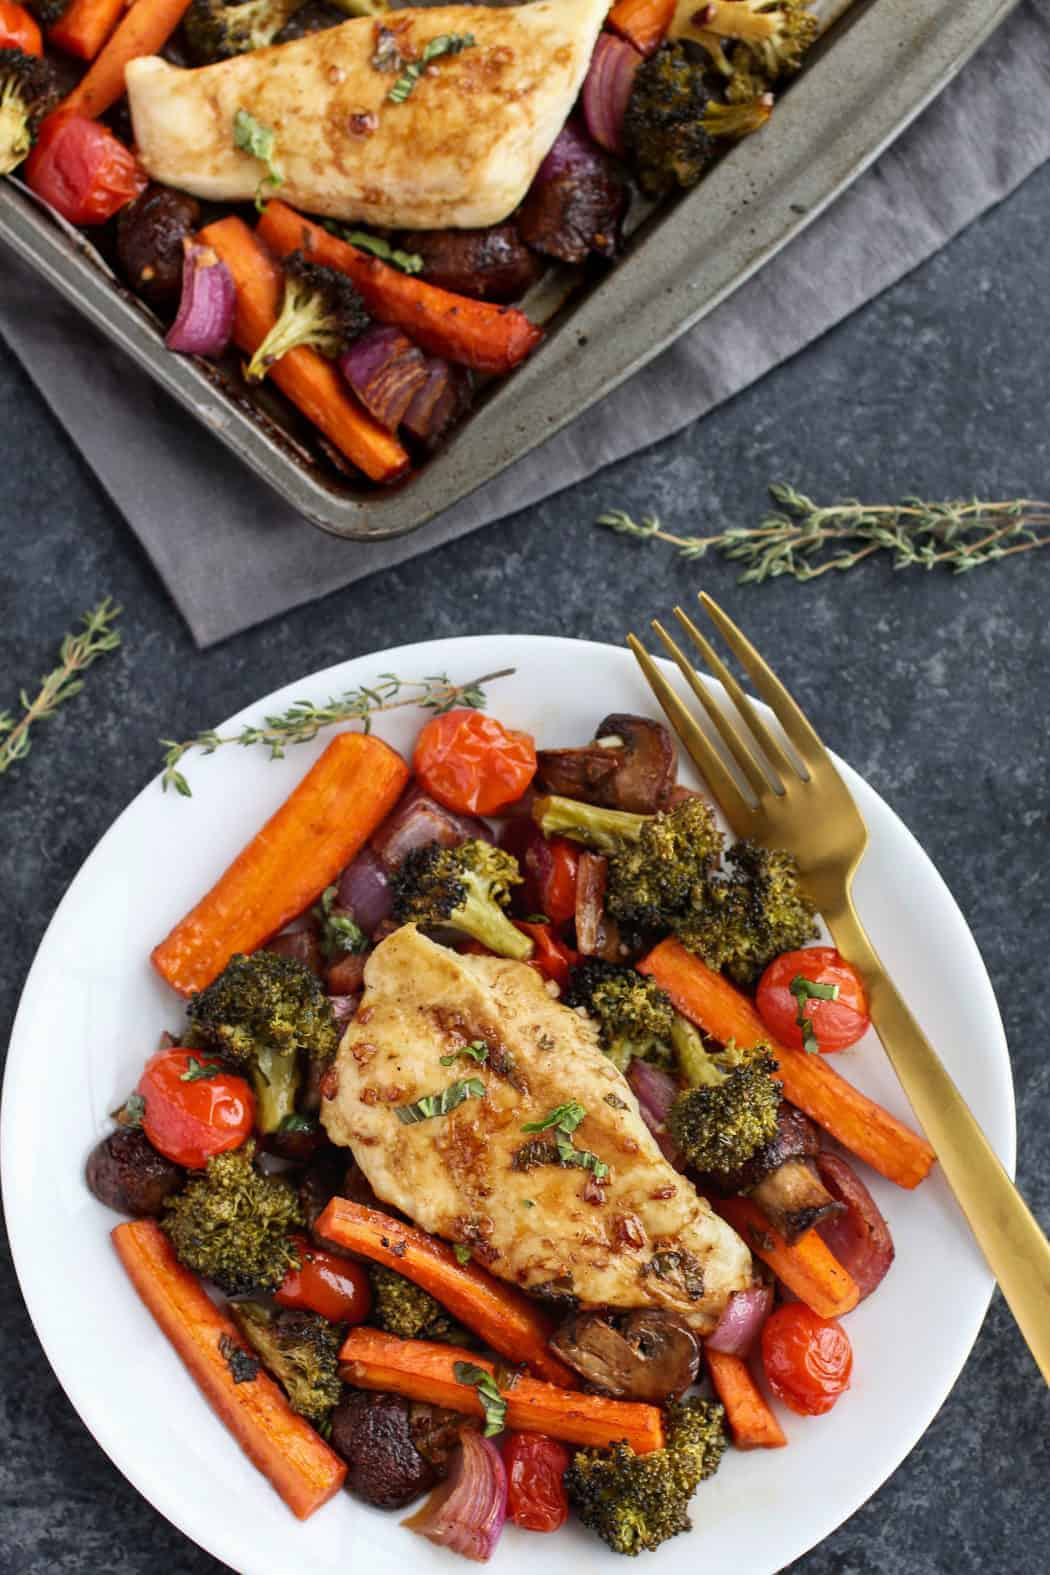 Healthy Easy Delicious One Pan Balsamic Chicken Veggie Bake Is Quick To